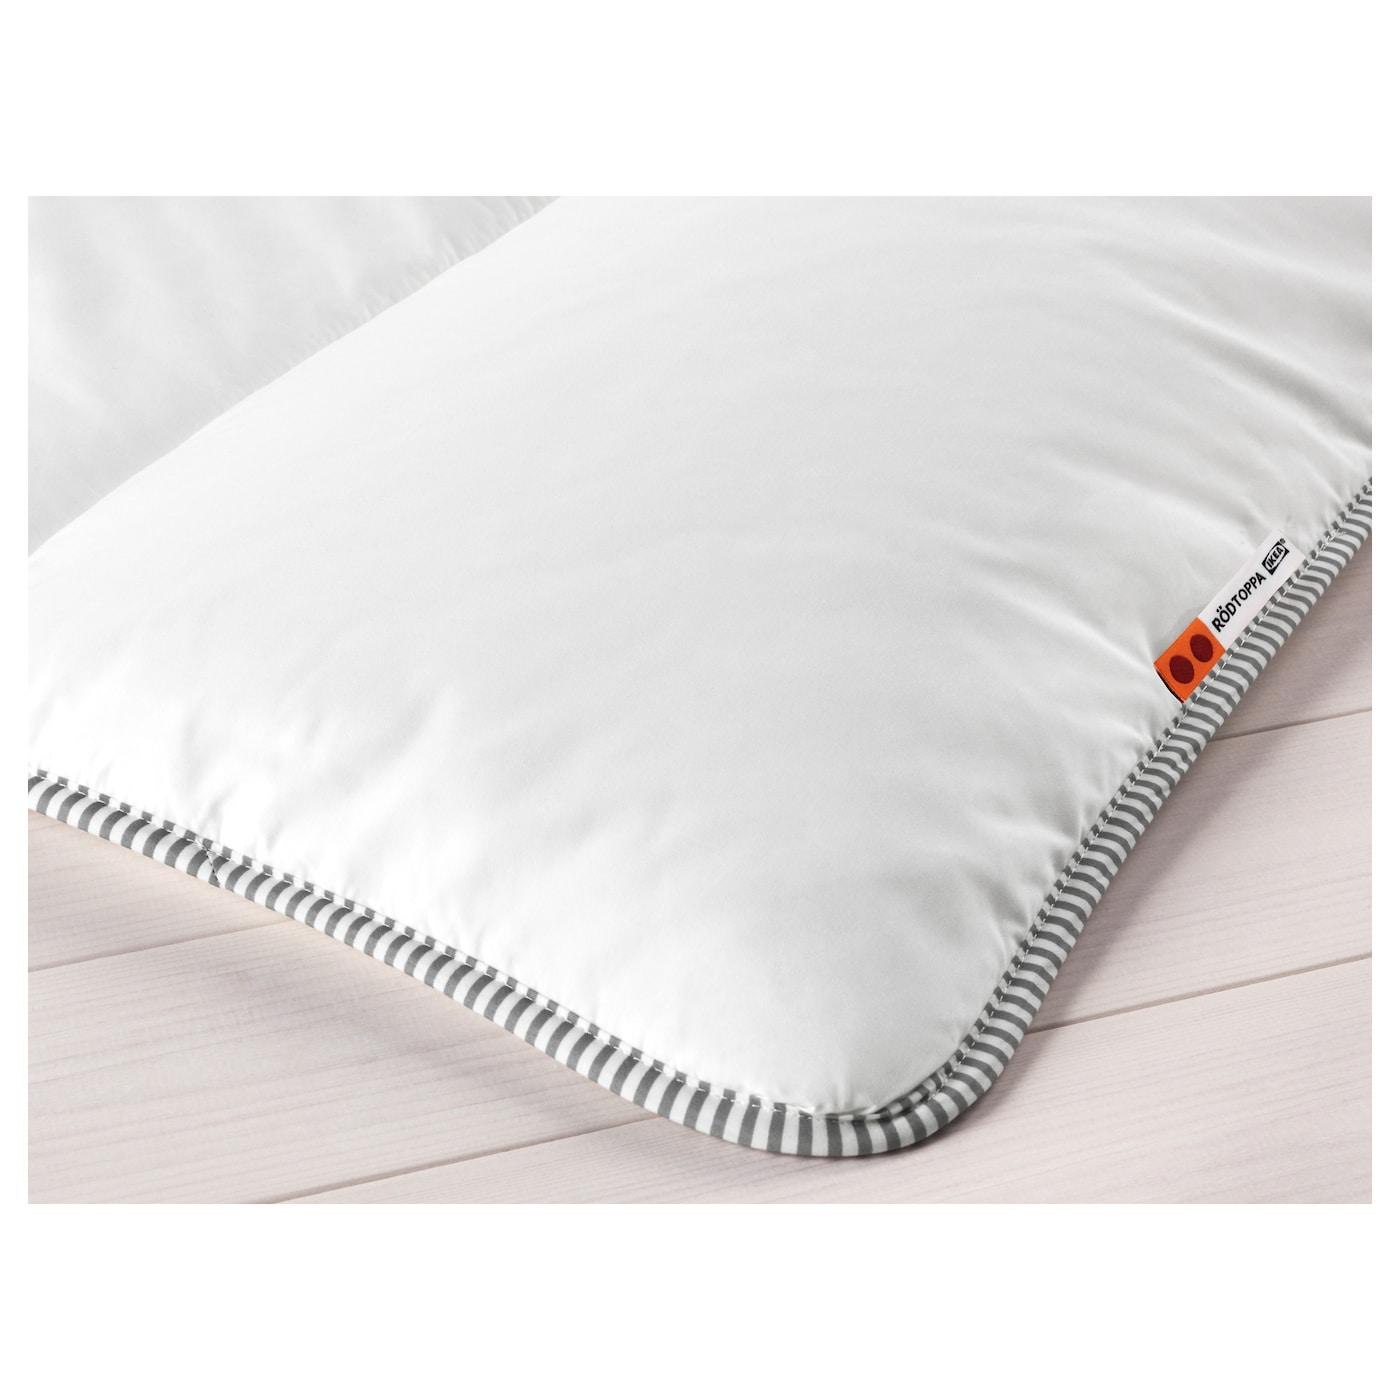 pillow down what i list on and your duvet with you favorite finds nesting love need ikea bought inserts grace insert